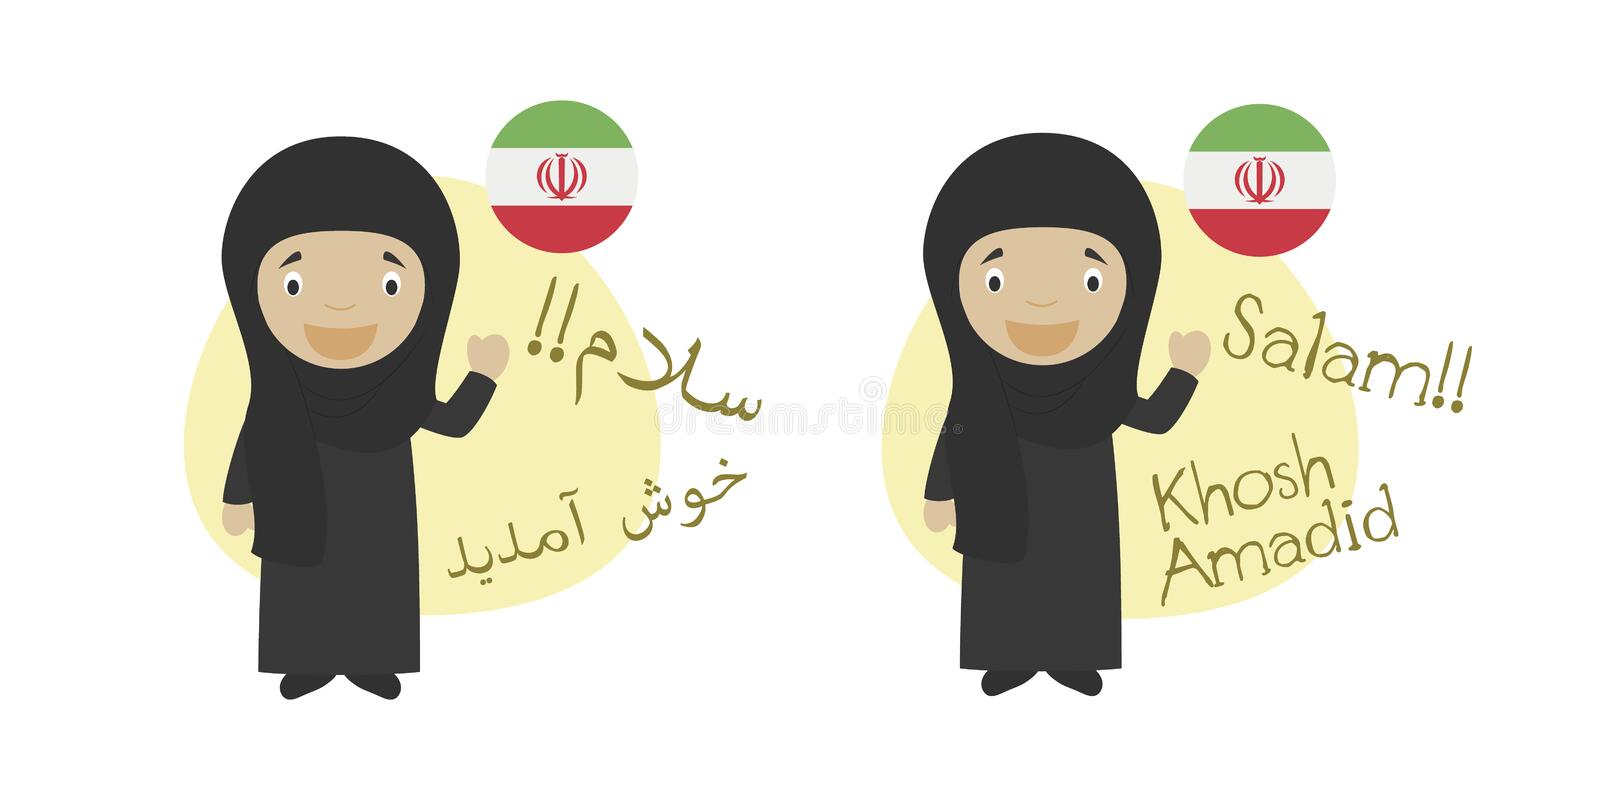 Vector illustration of cartoon characters saying hello and welcome in Persian or Farsi and its transliteration into latin alphabet. Isolated on white vector illustration